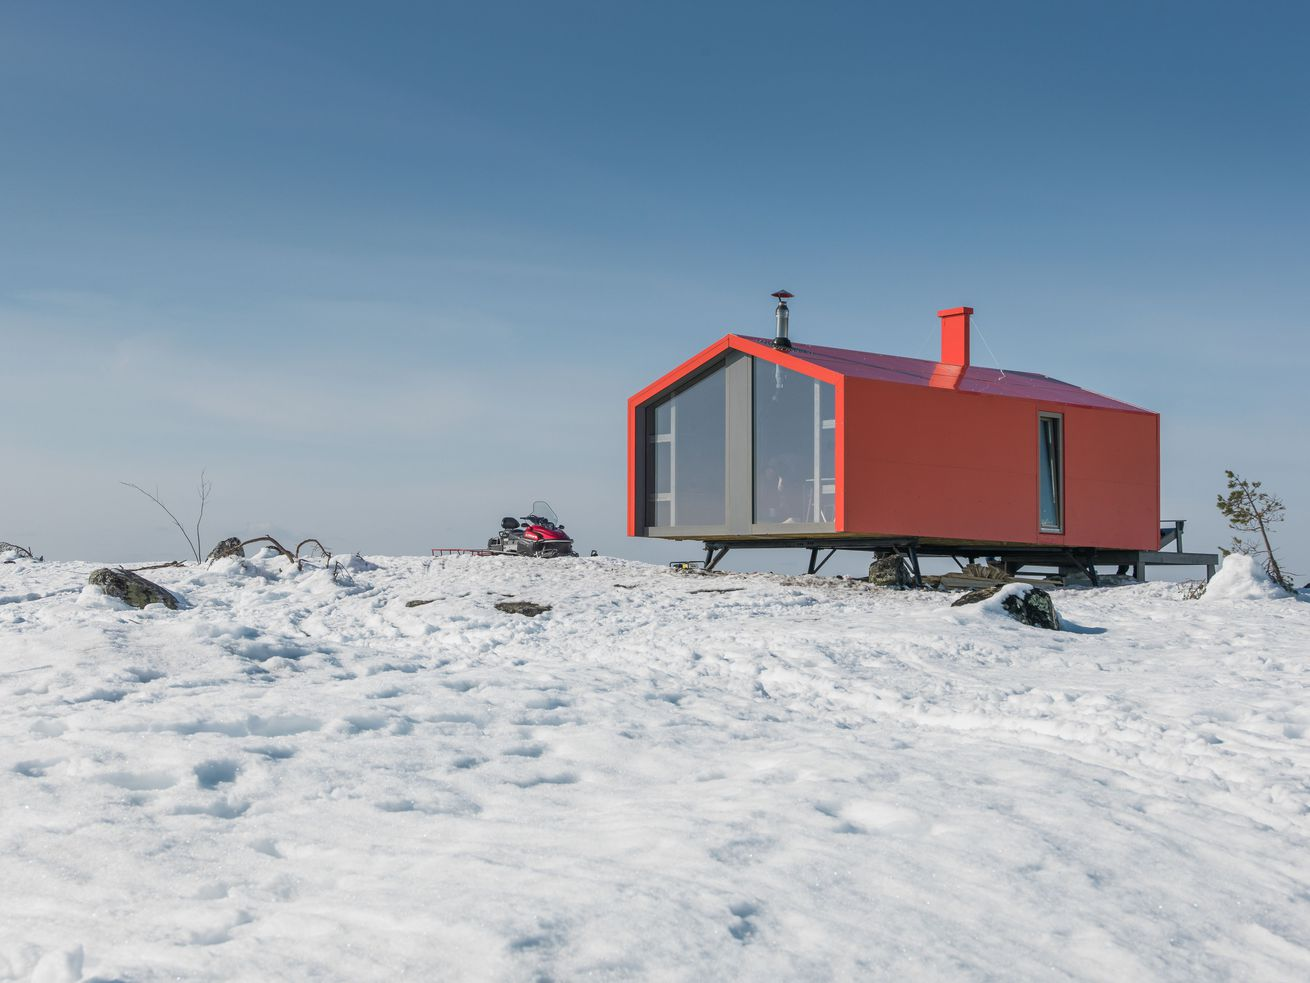 This prefab cabin was helicoptered into place